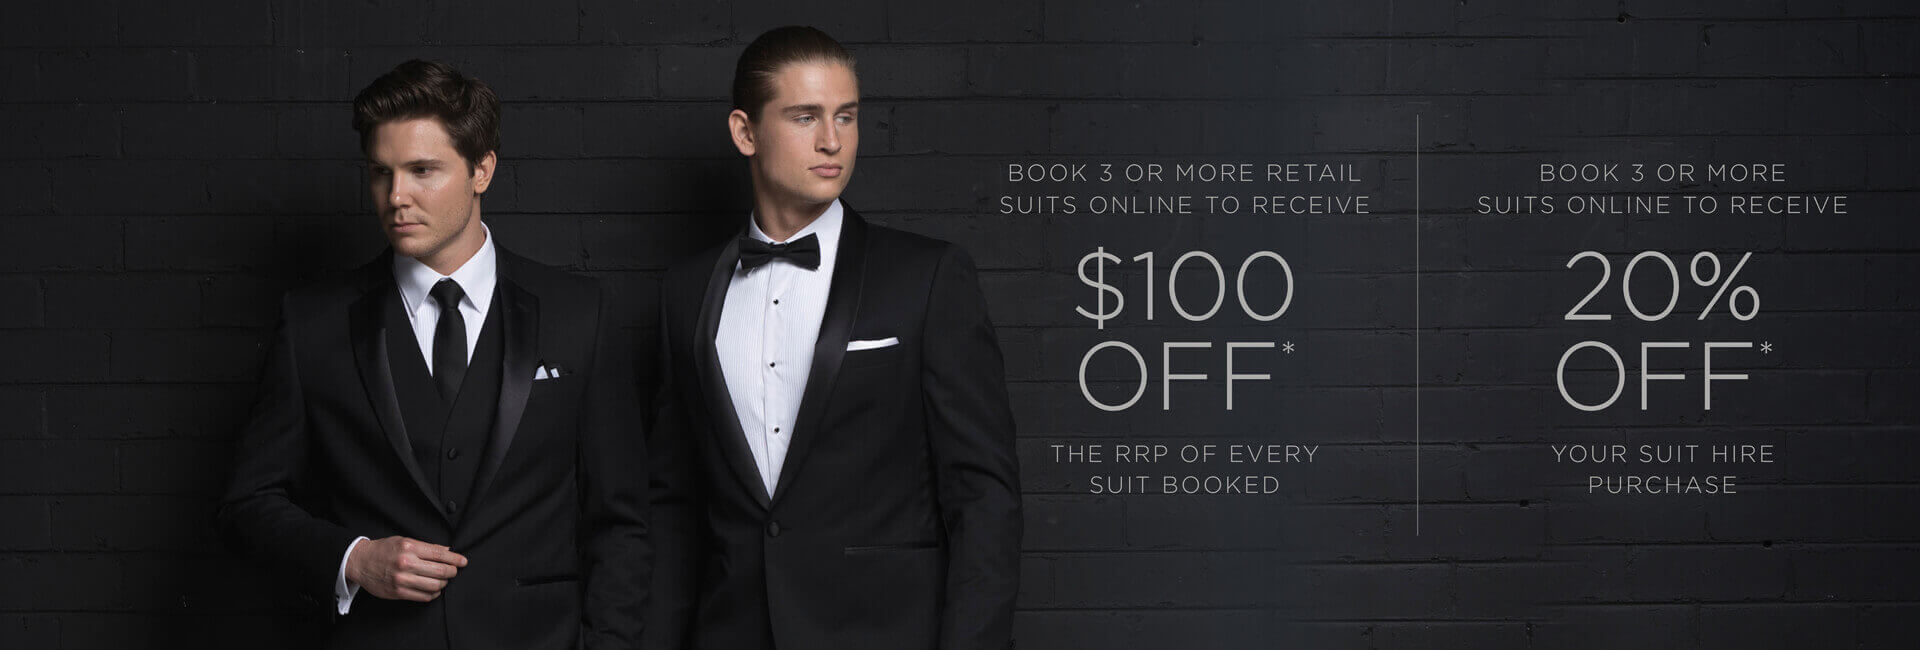 Formalwear Suit Offer